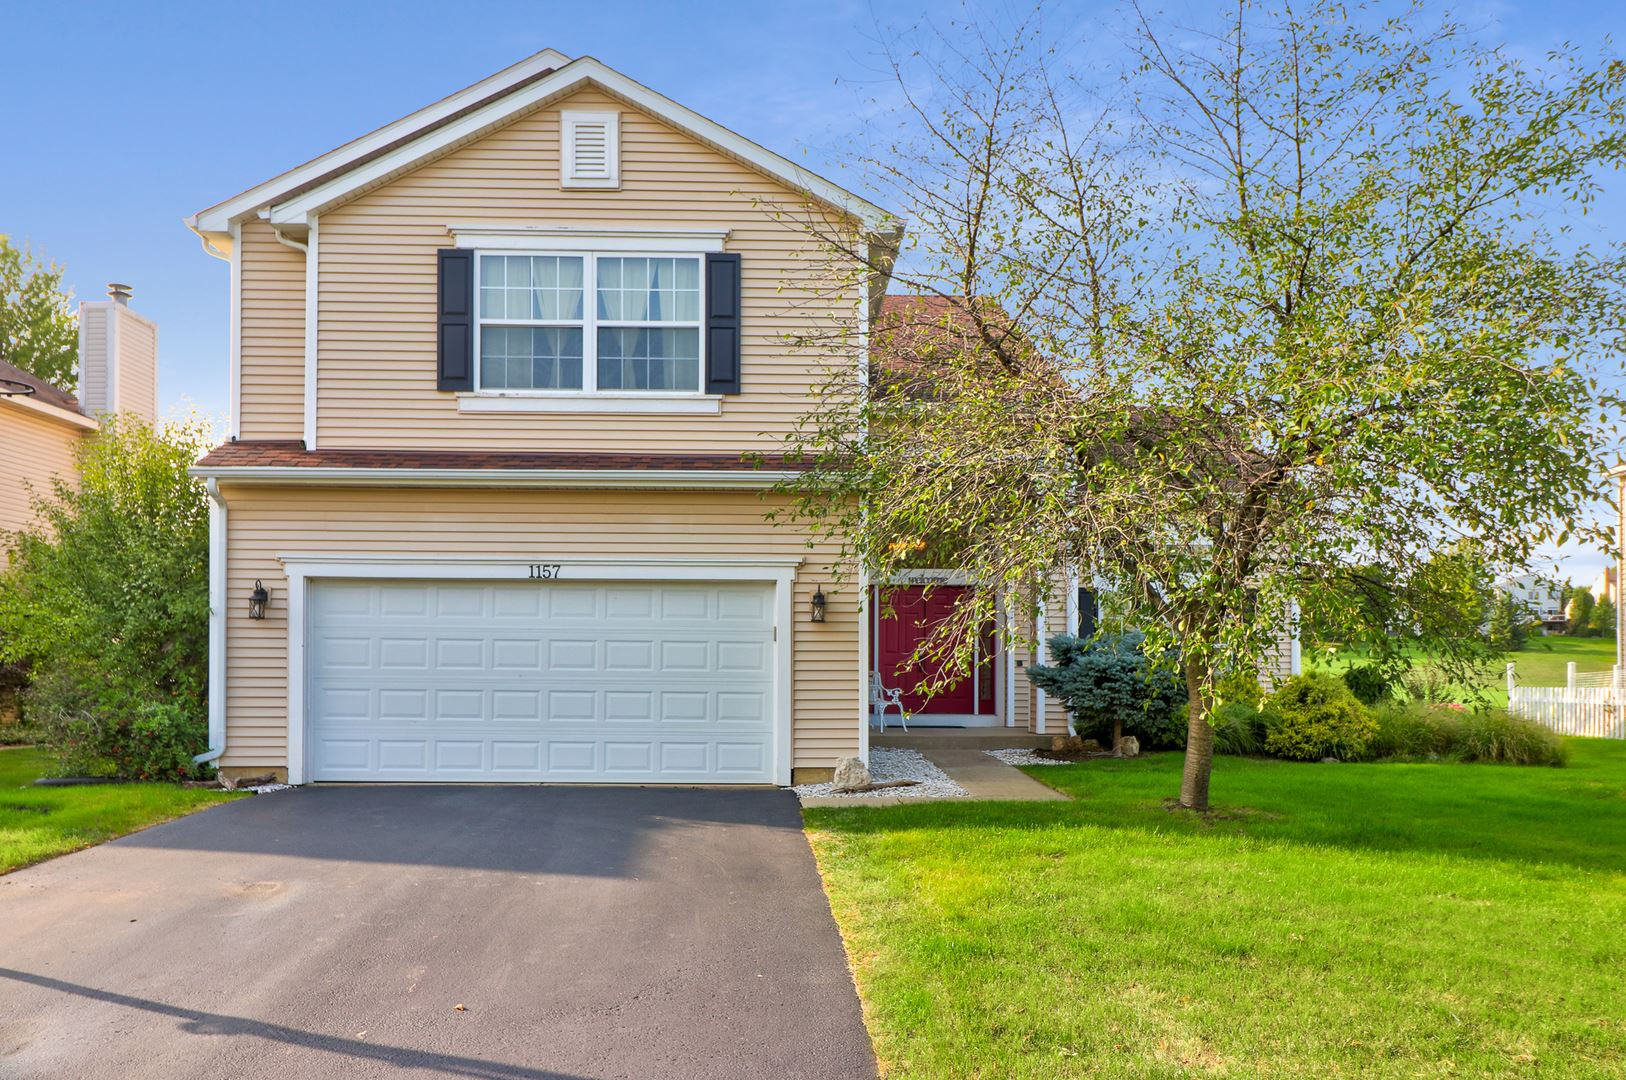 1157 HEAVENS GATE, Lake in the Hills, IL 60156 - #: 10870952